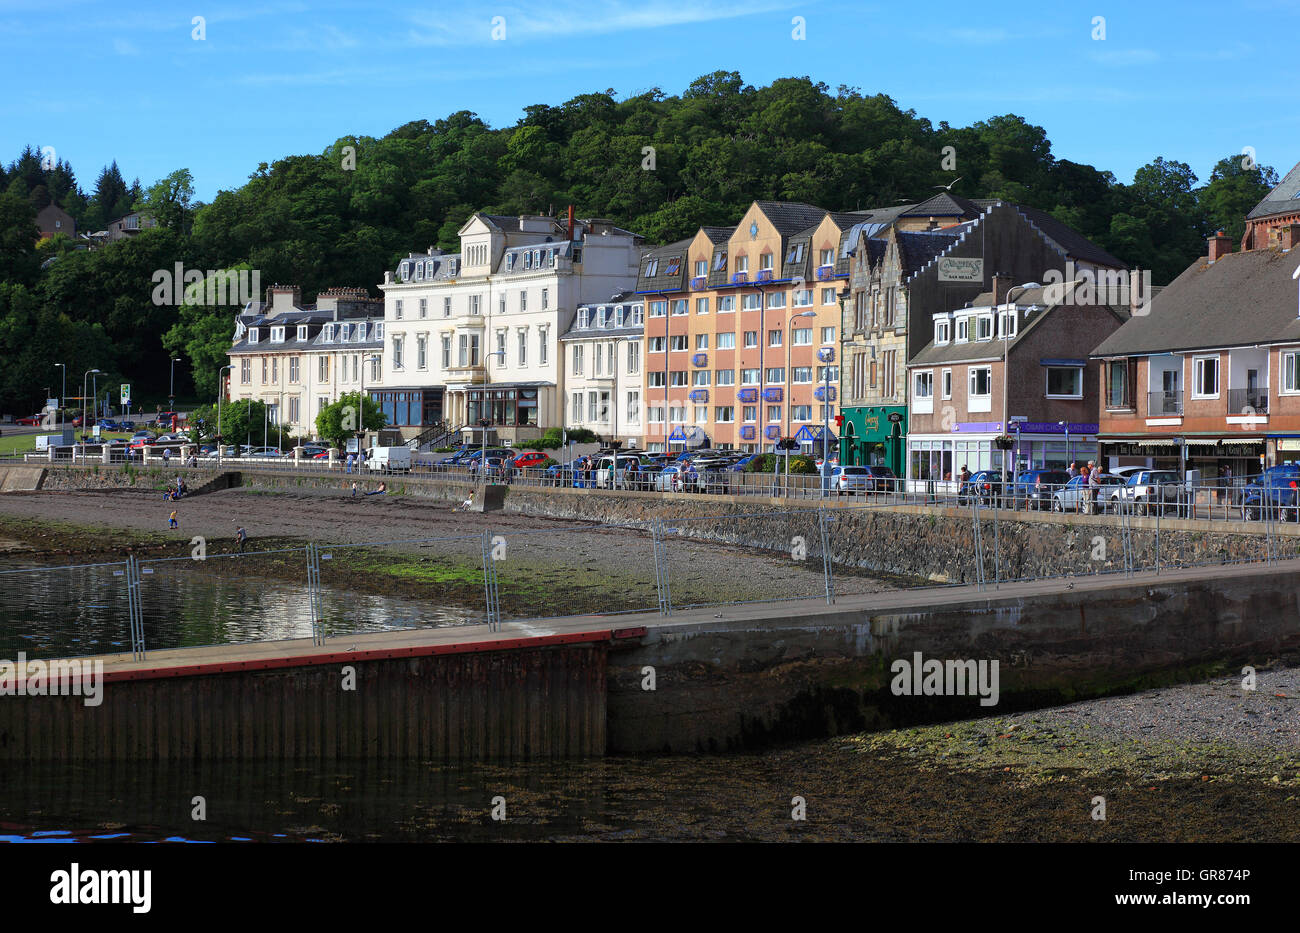 Scotland, Oban city, look at the houses in the Waterfront - Stock Image